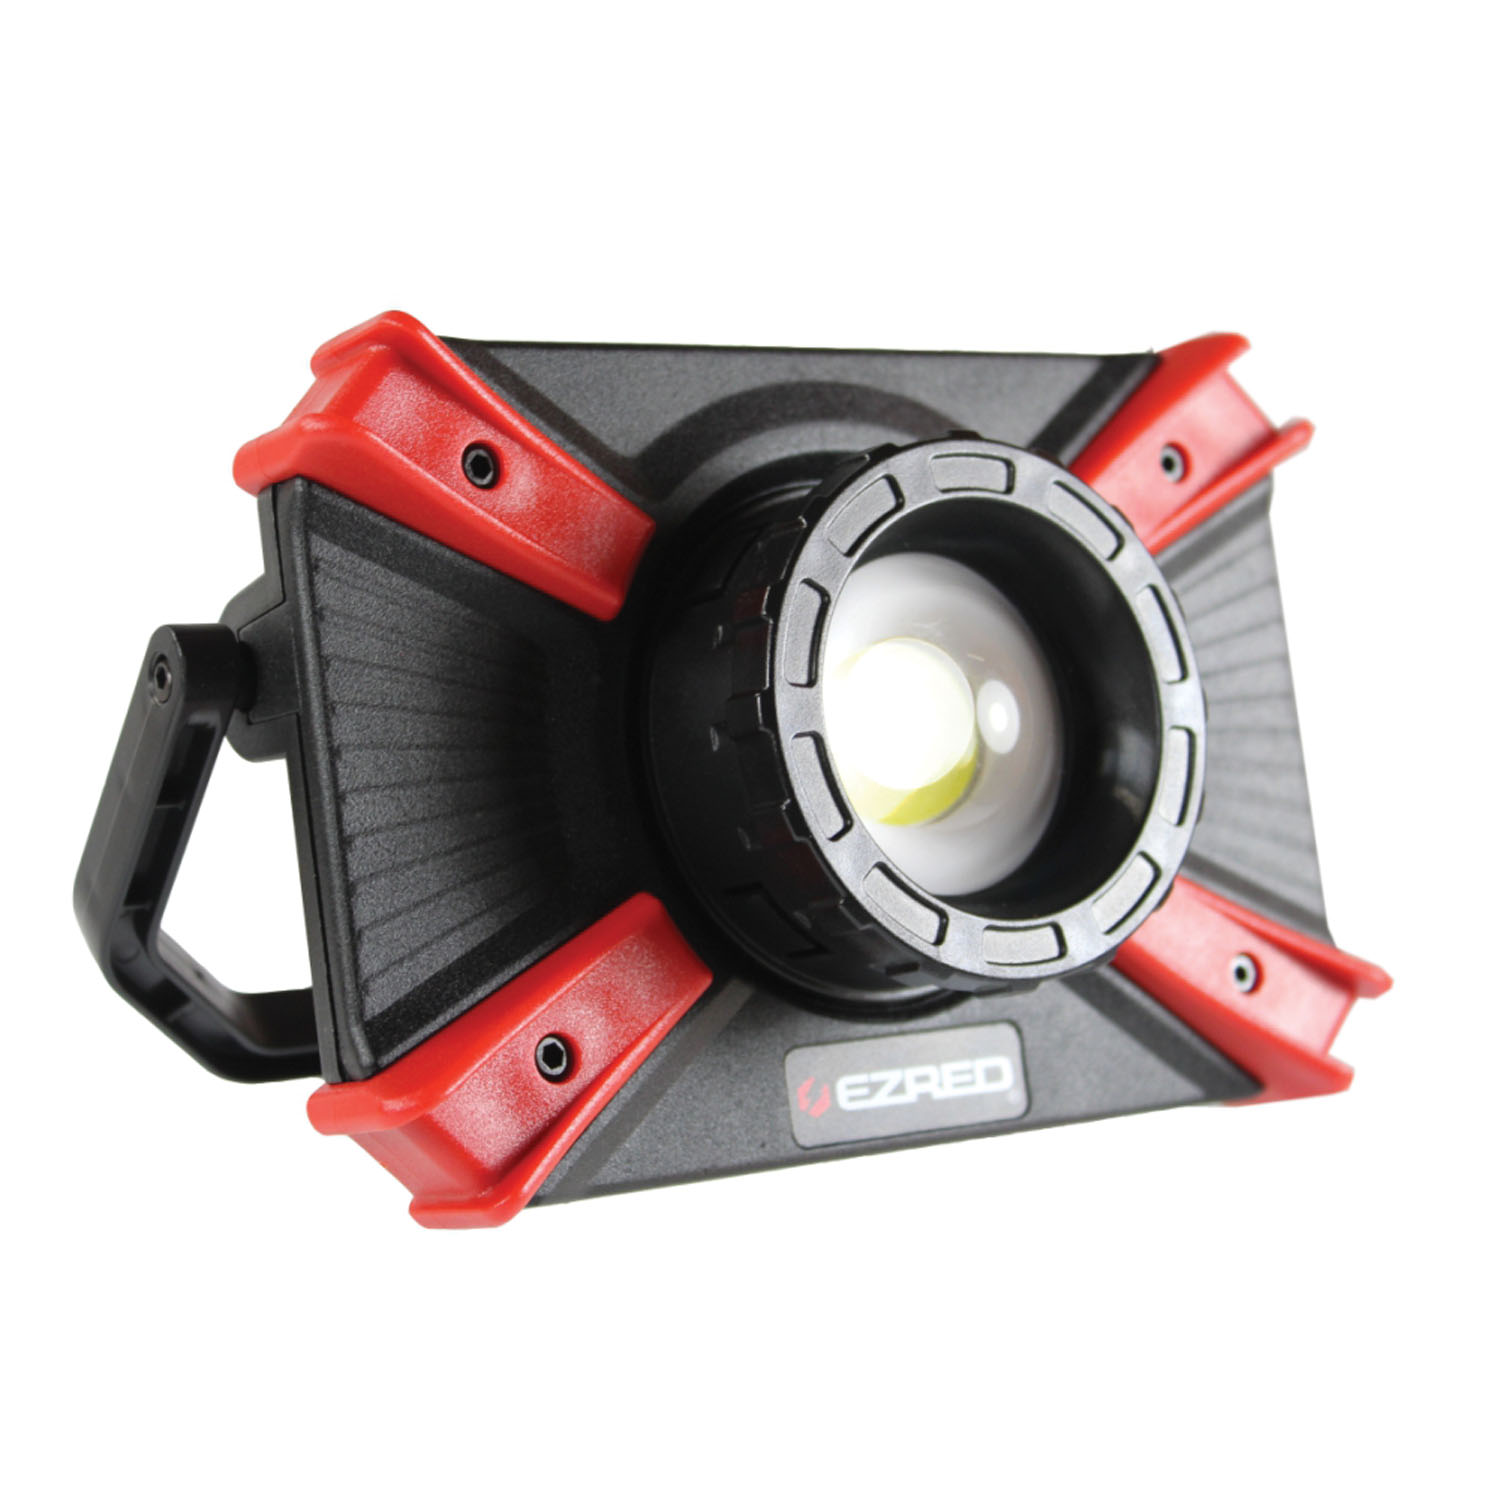 E-Z Red 1001 Lm Extreme Focusing Light